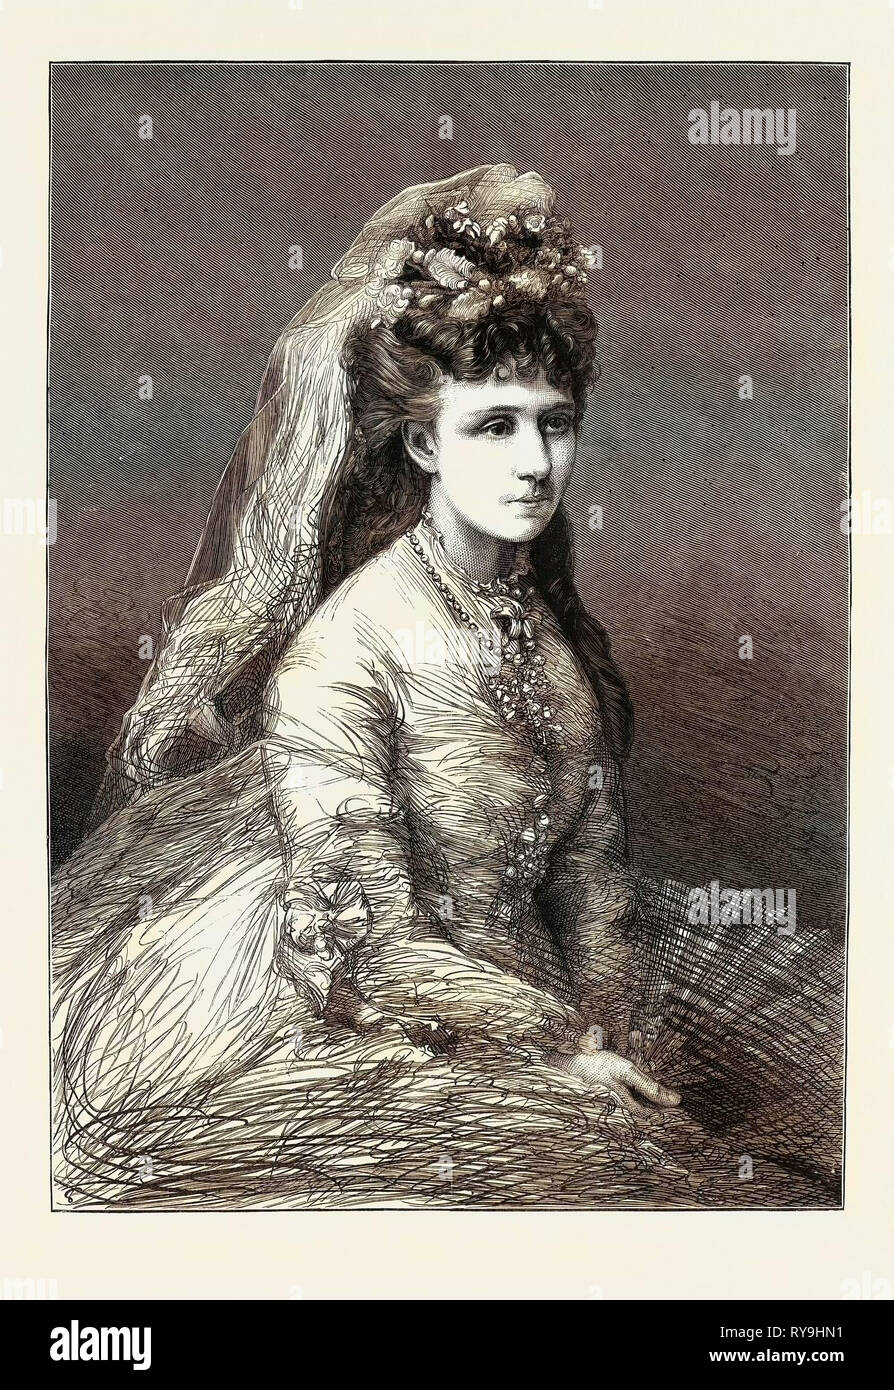 The Civil War in Spain, the Infanta Doña Maria De Las Nieves, Wife of Don Alphonso, Commonly Known As Doï'a Blanca, the Carlist Leader Stock Photo